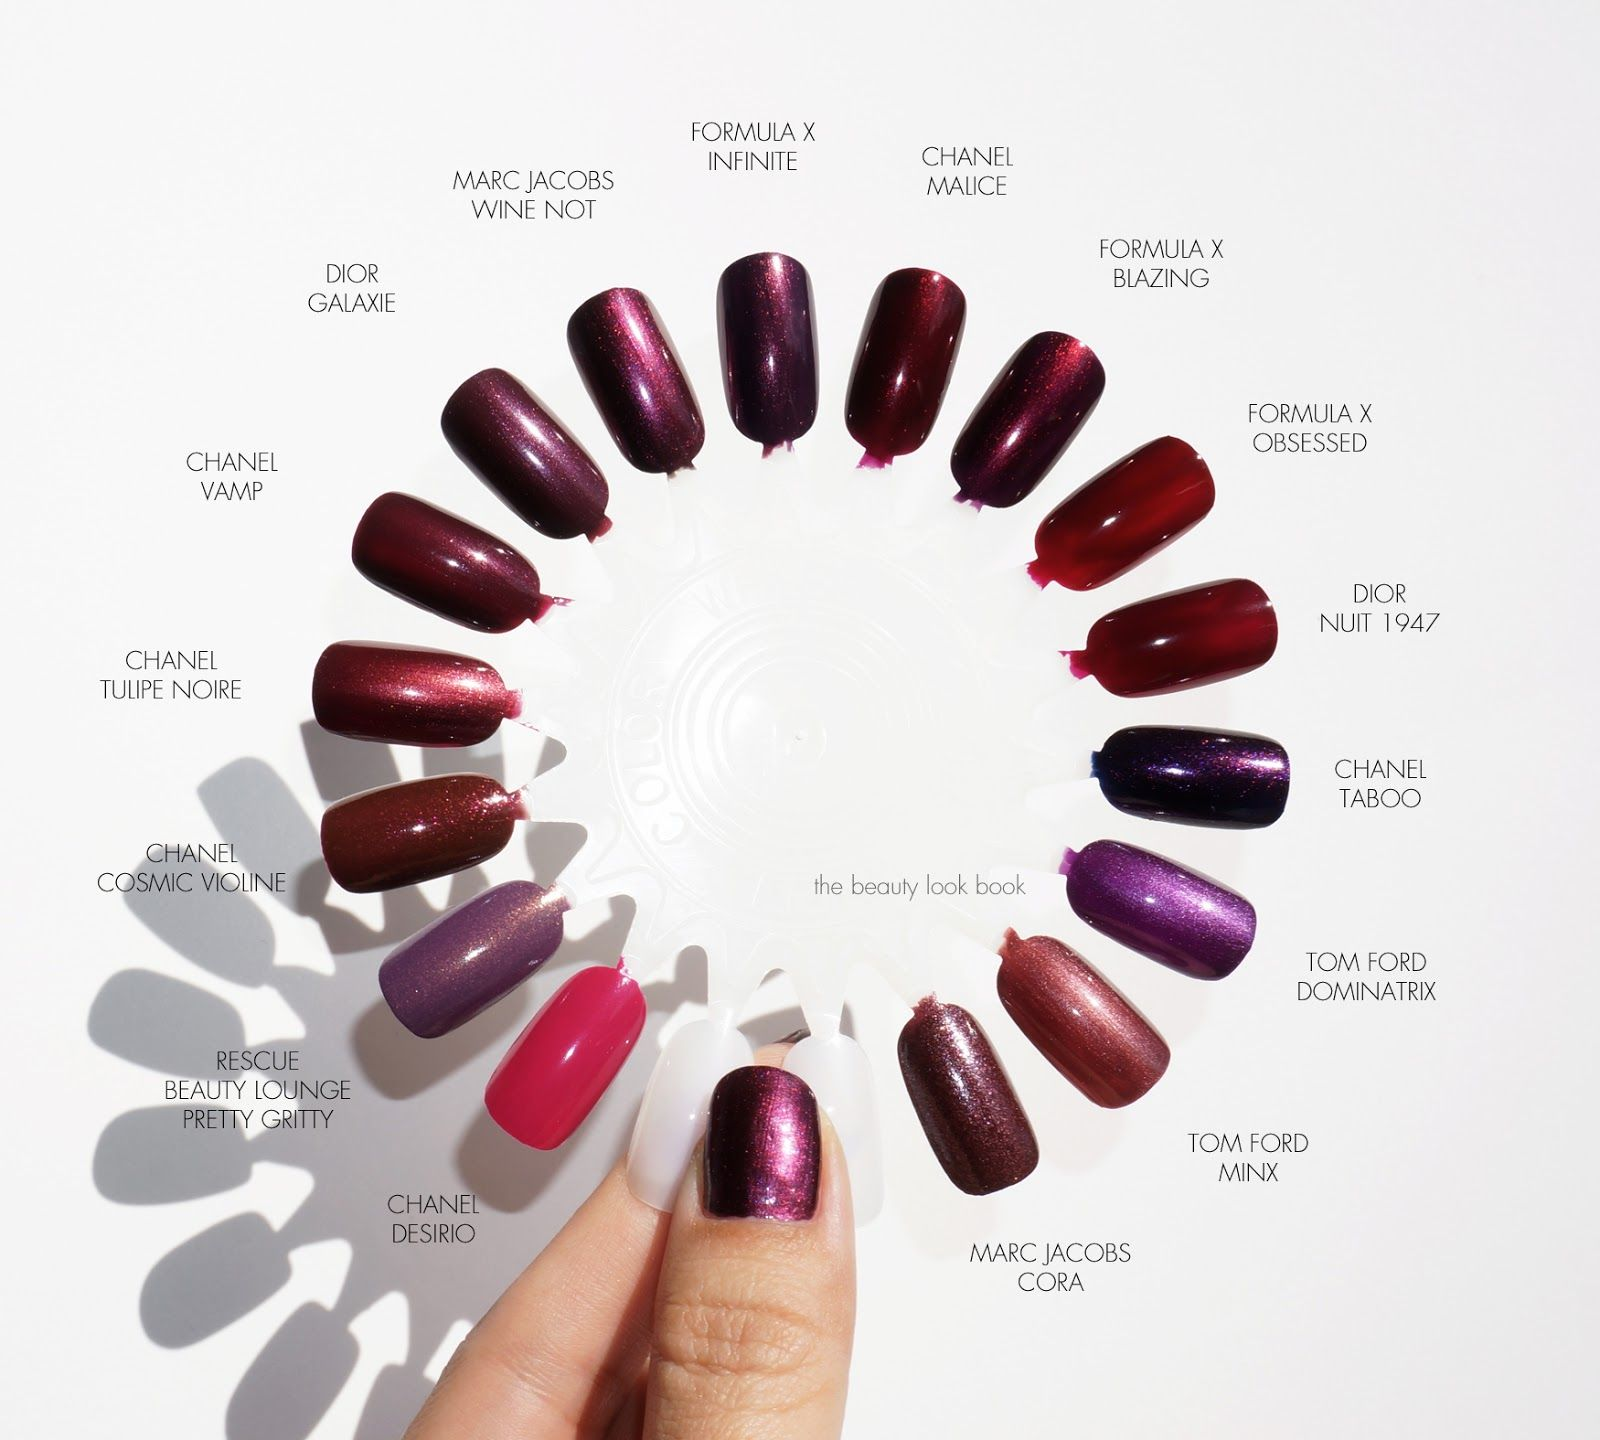 Nail Polish Swatch Book: The Beauty Look Book: Marc Jacobs Beauty Enamored Hi-Shine